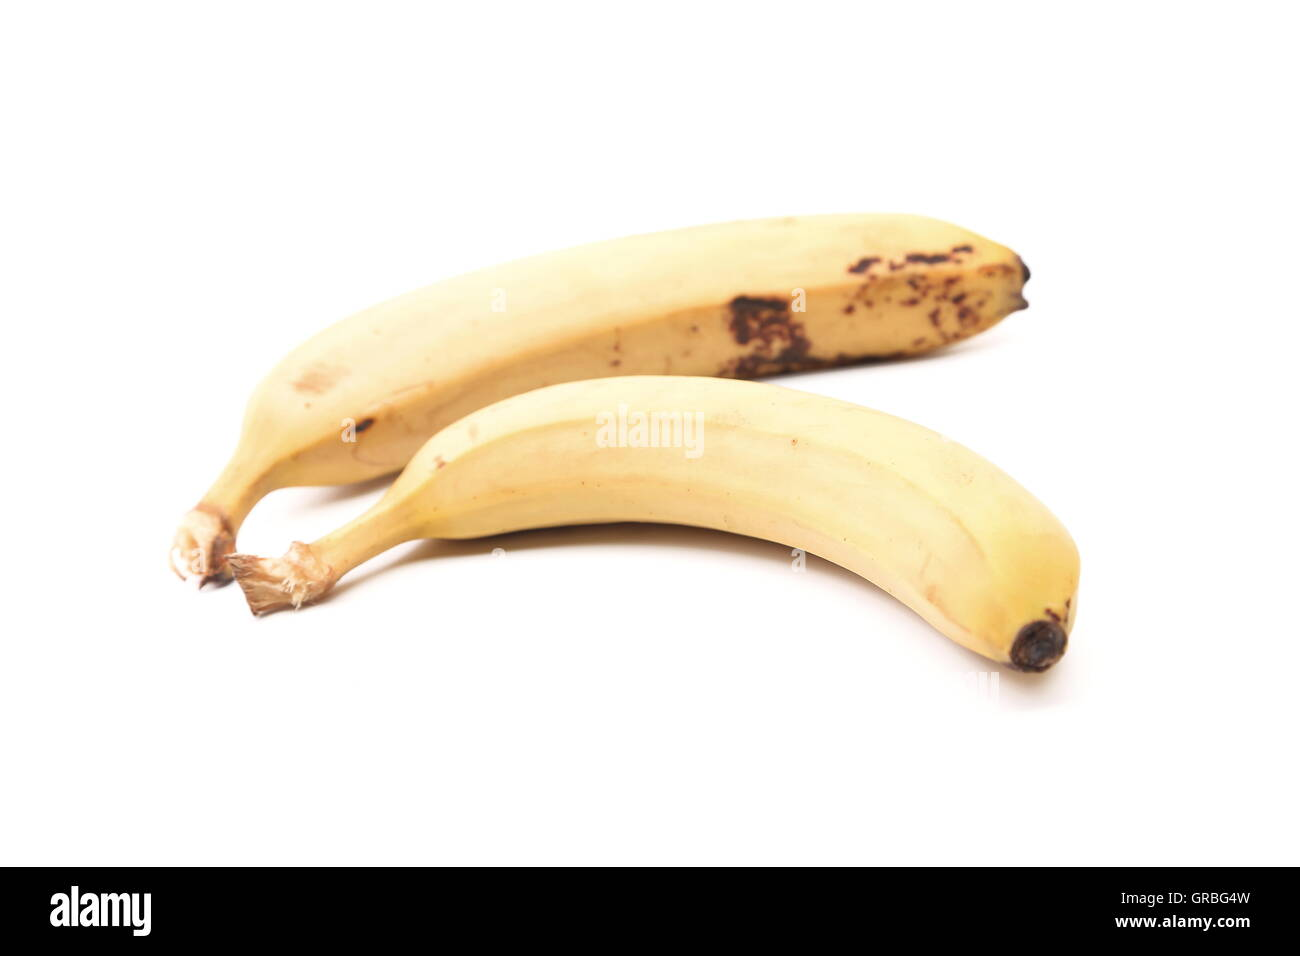 Detail of two old speckled bananas - Stock Image